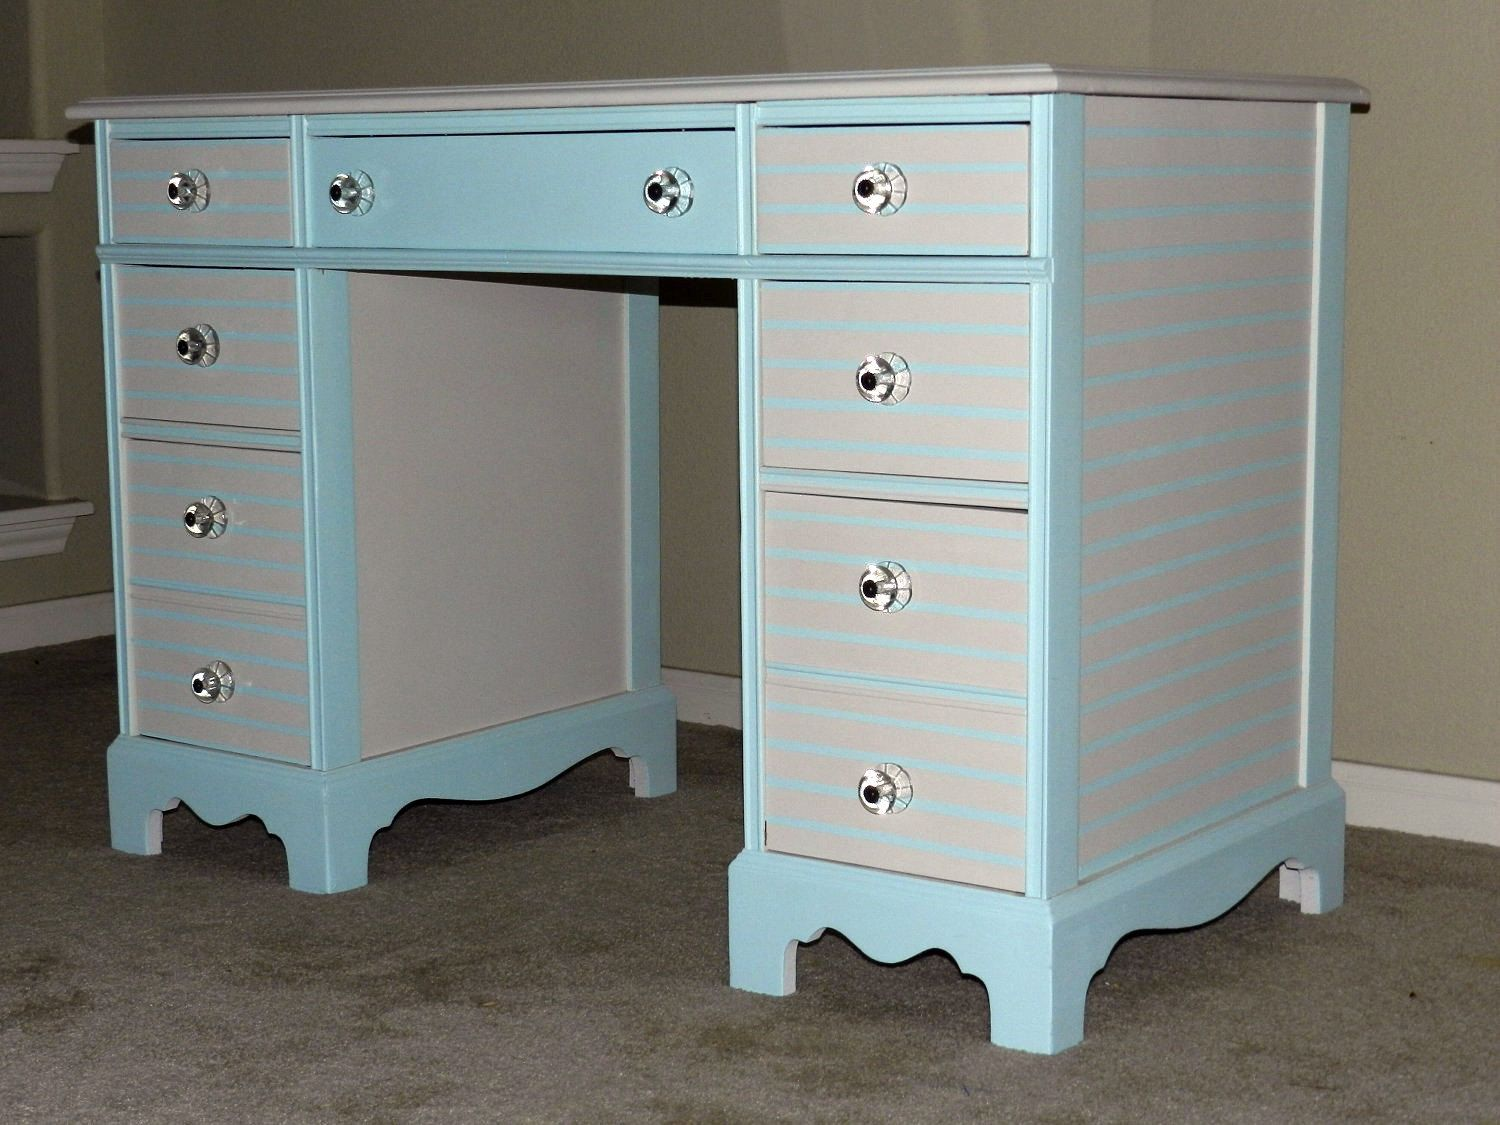 painted furniture, vintage desk, anthropologie glass knobs, craft room, chic furniture, one of a kind, hand painted desk, blue, unique furniture